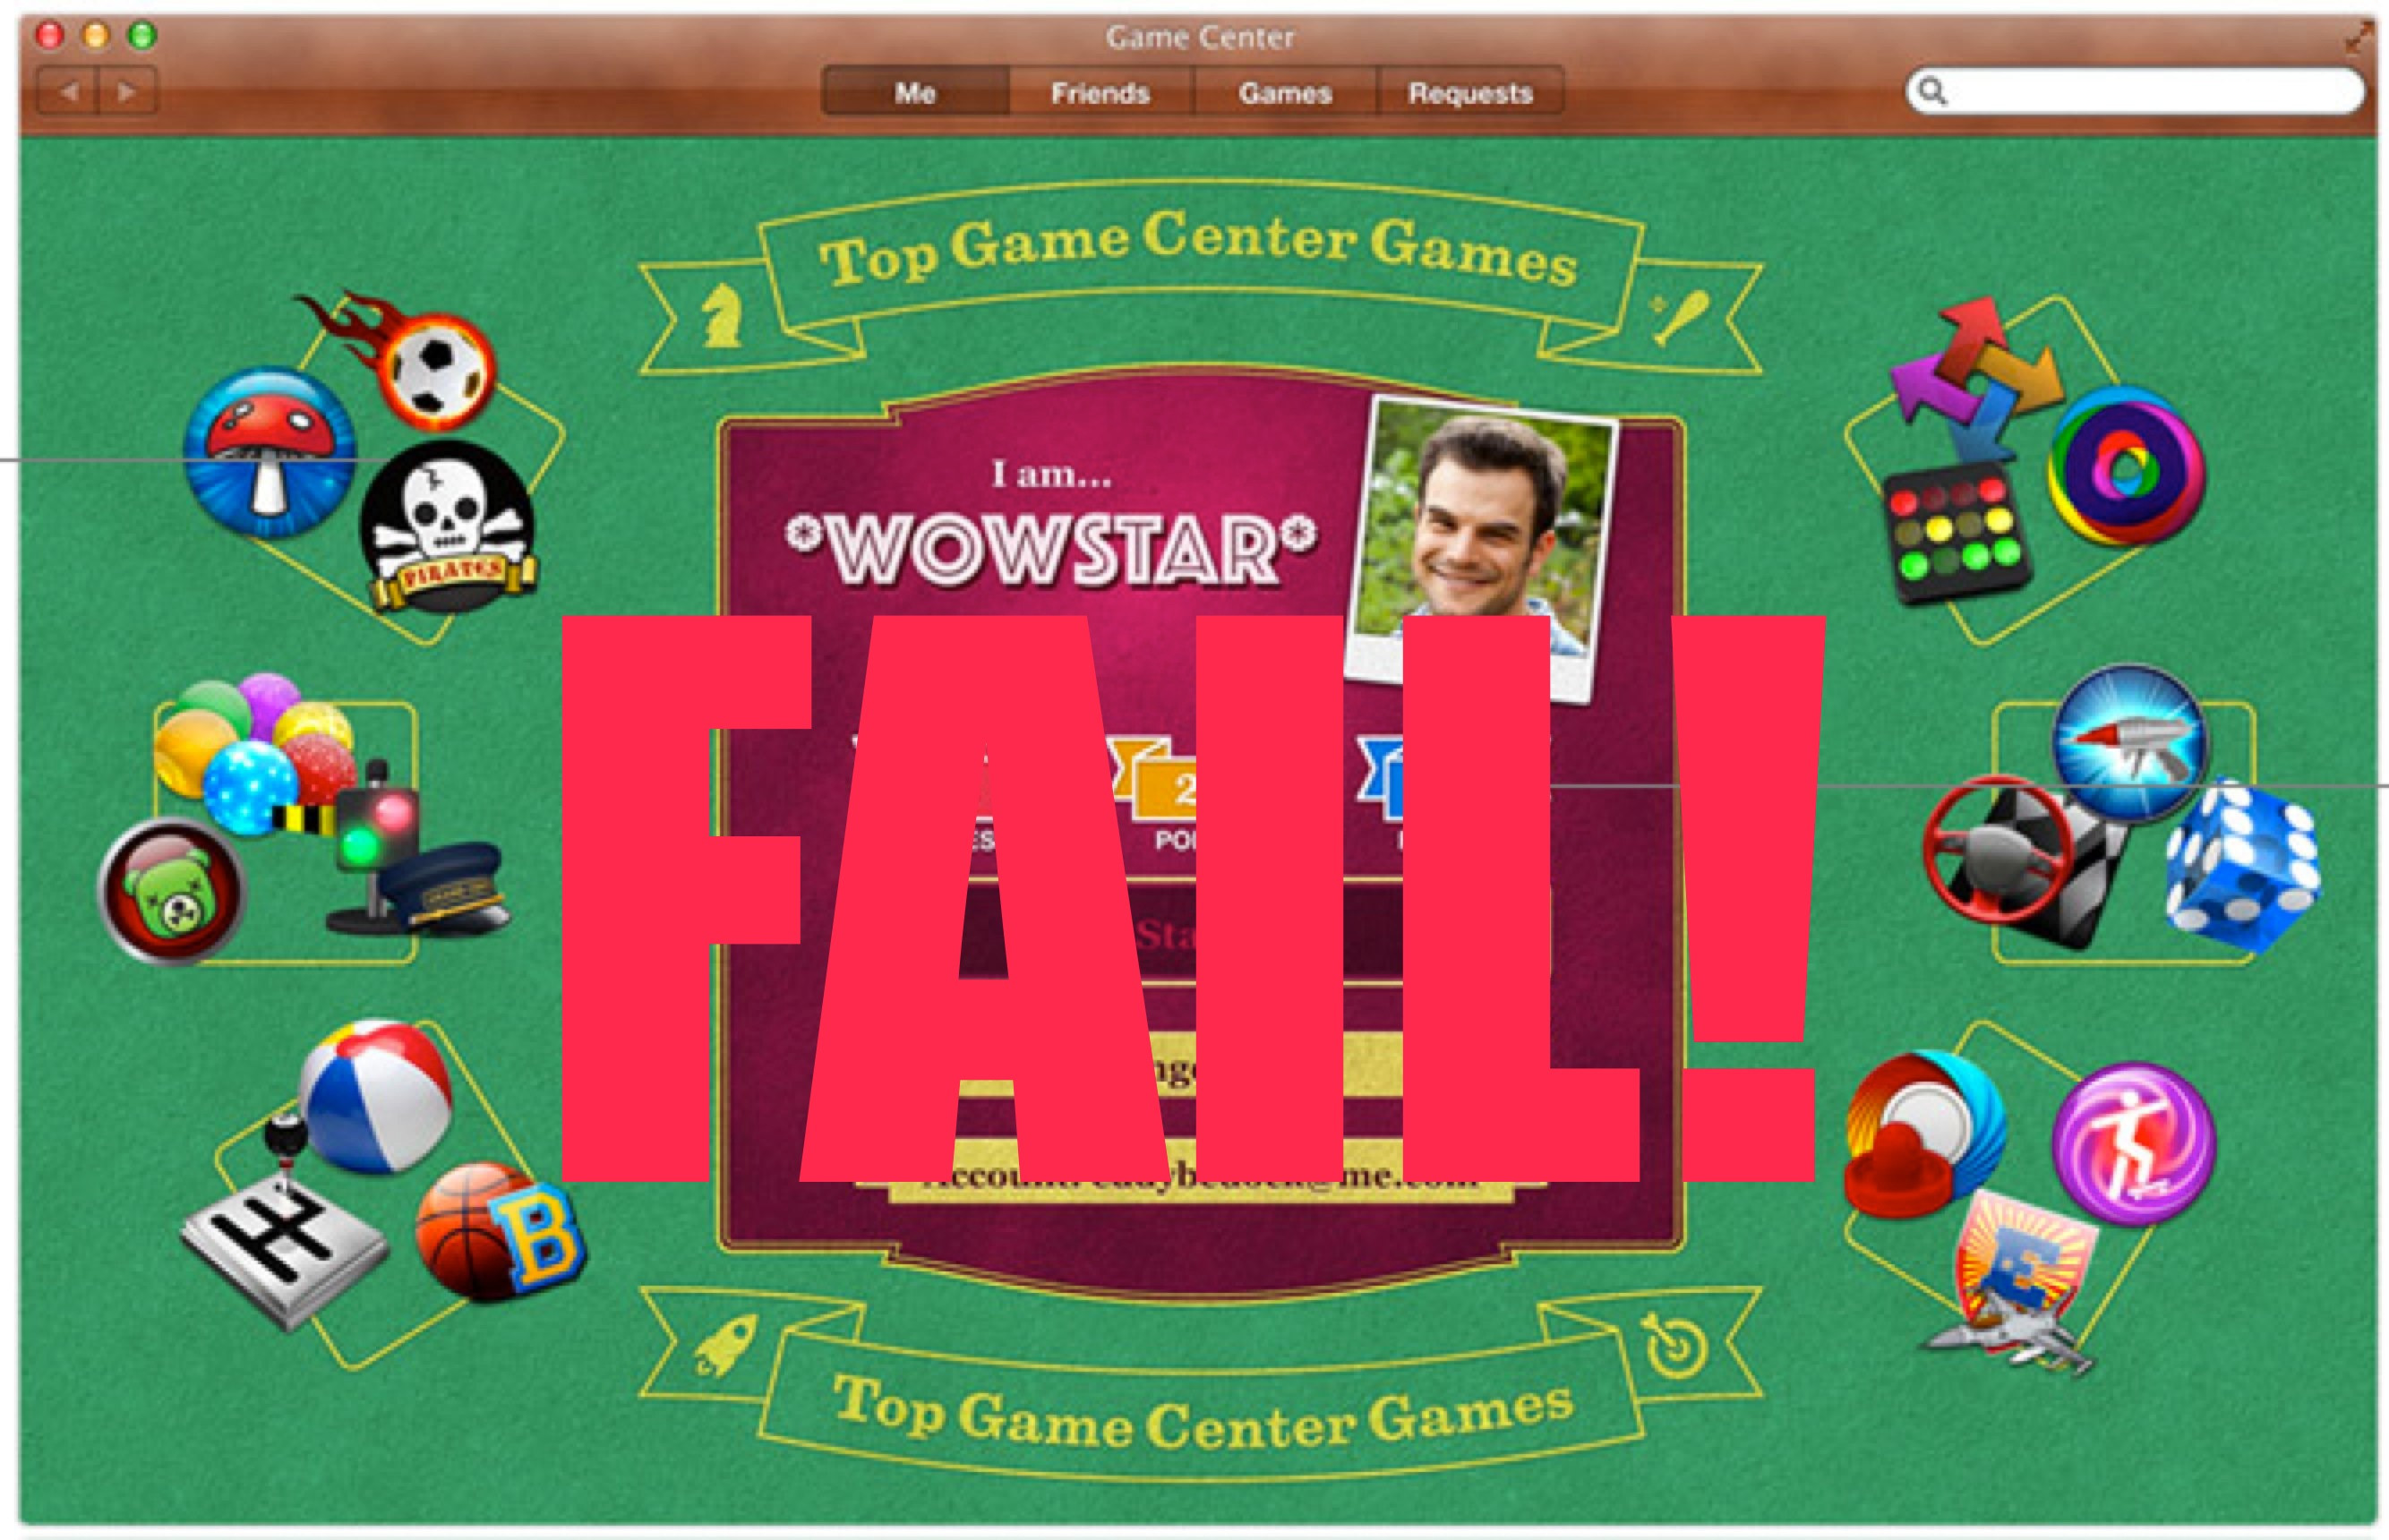 Game Center is not very good